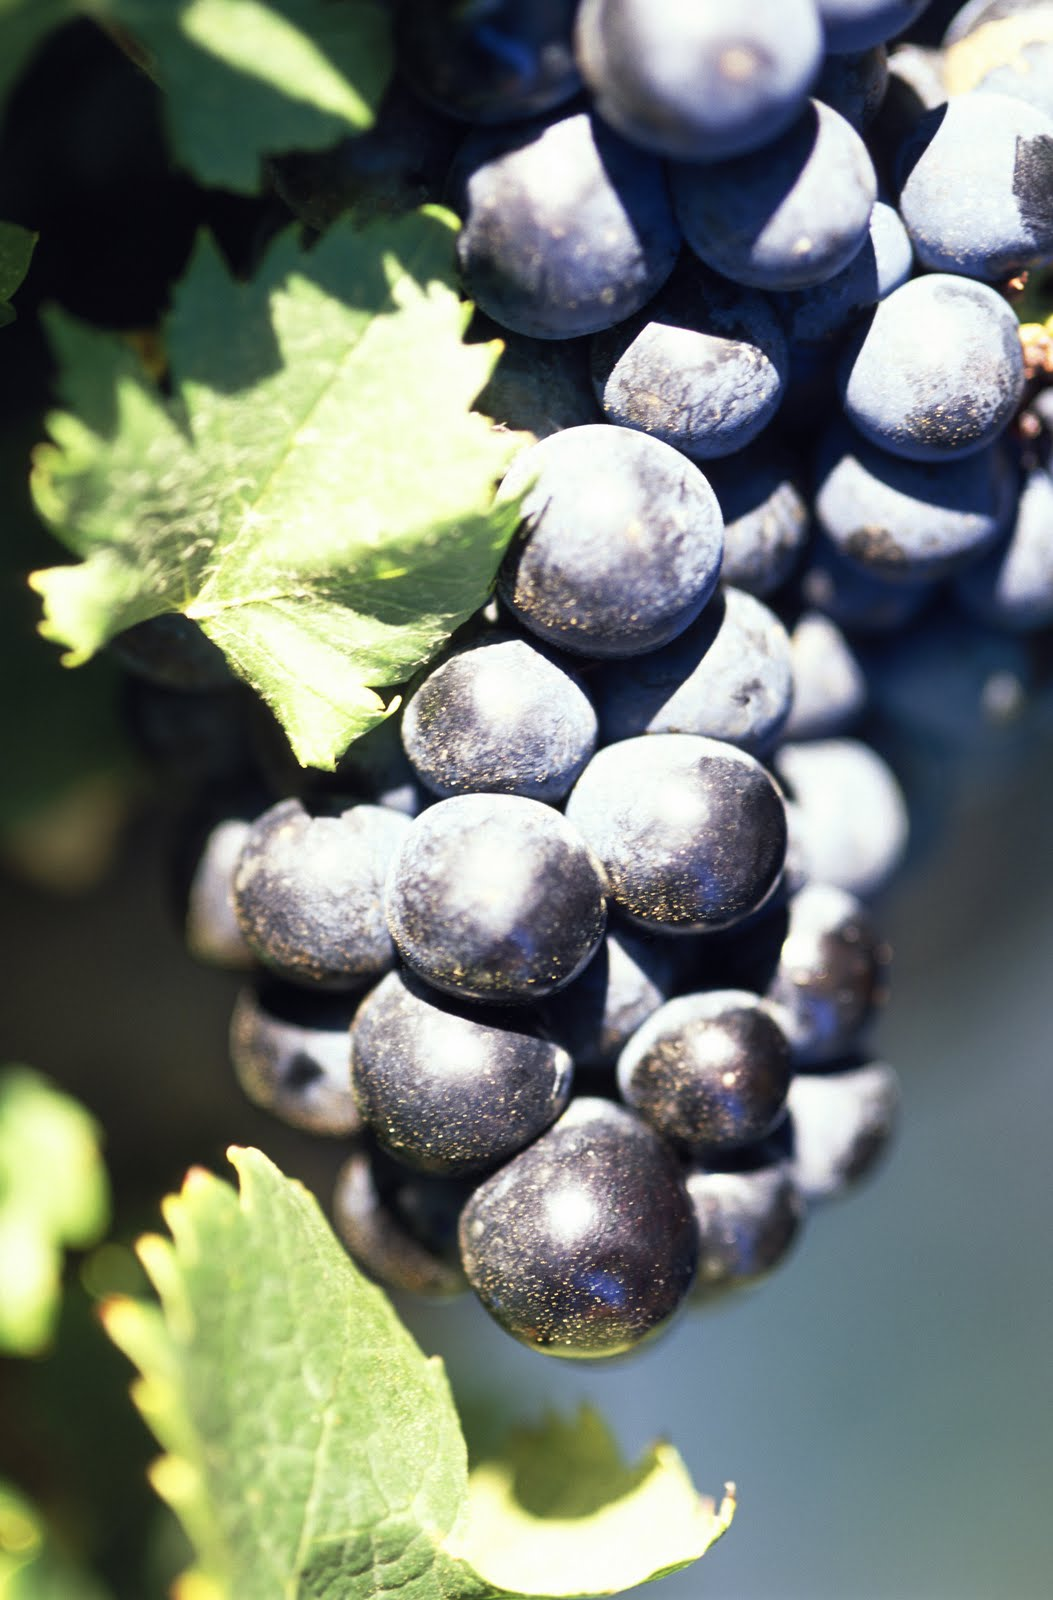 grapes wine hd wallpapers - photo #28